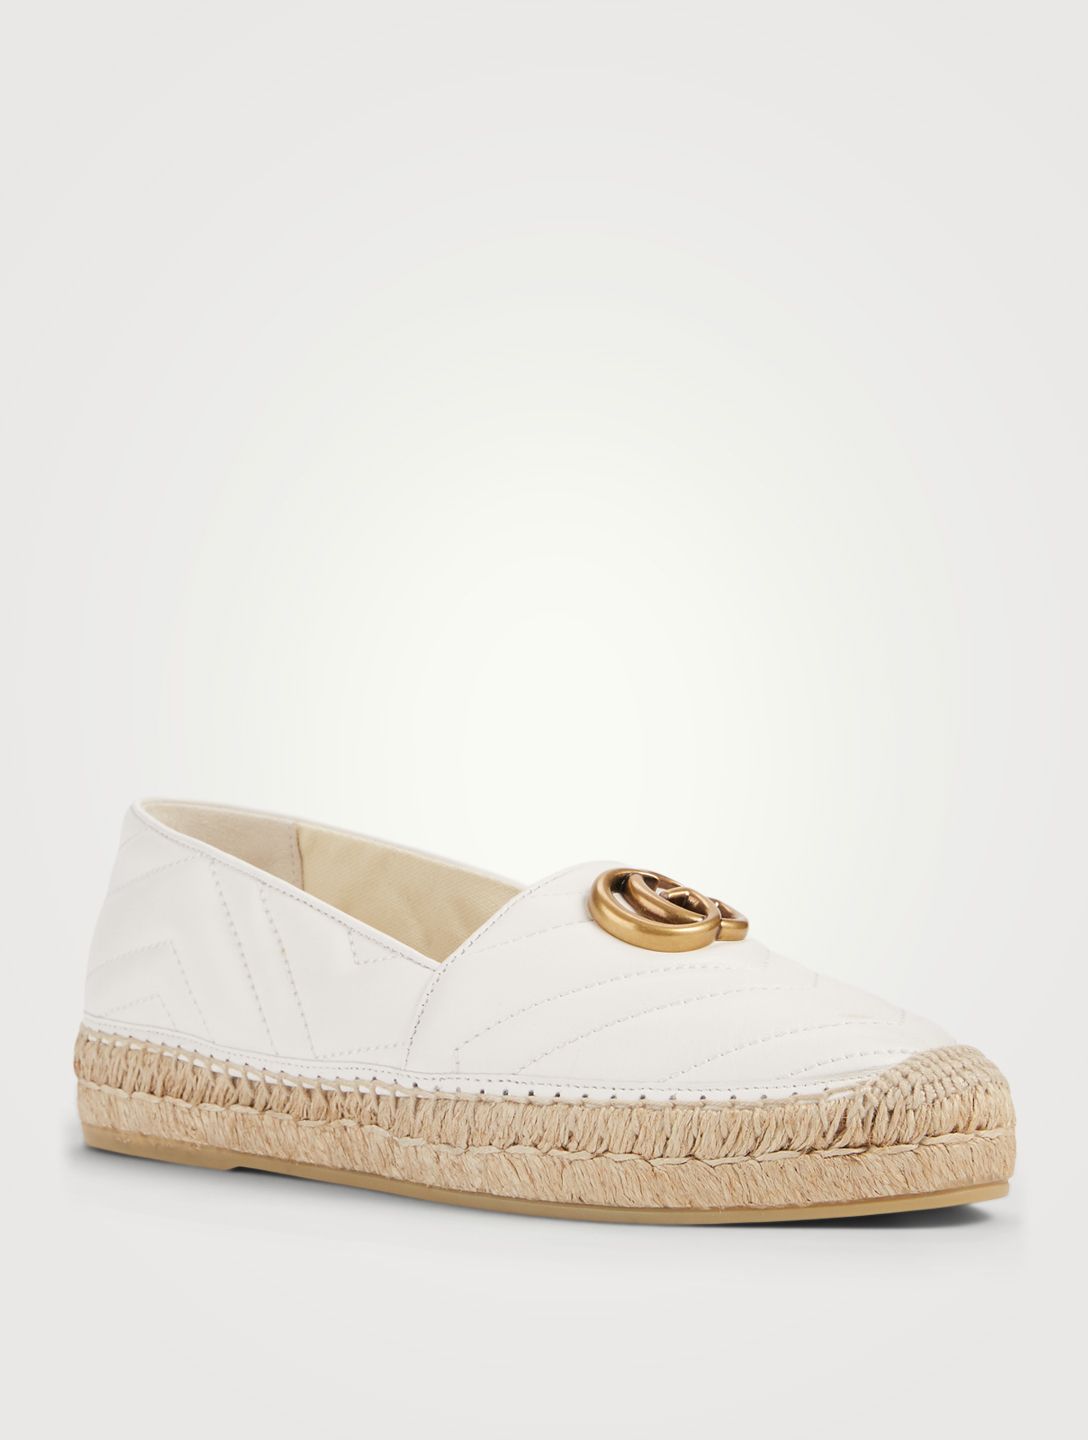 GUCCI Matelassé Chevron Leather Espadrille Flats With Double G Women's White